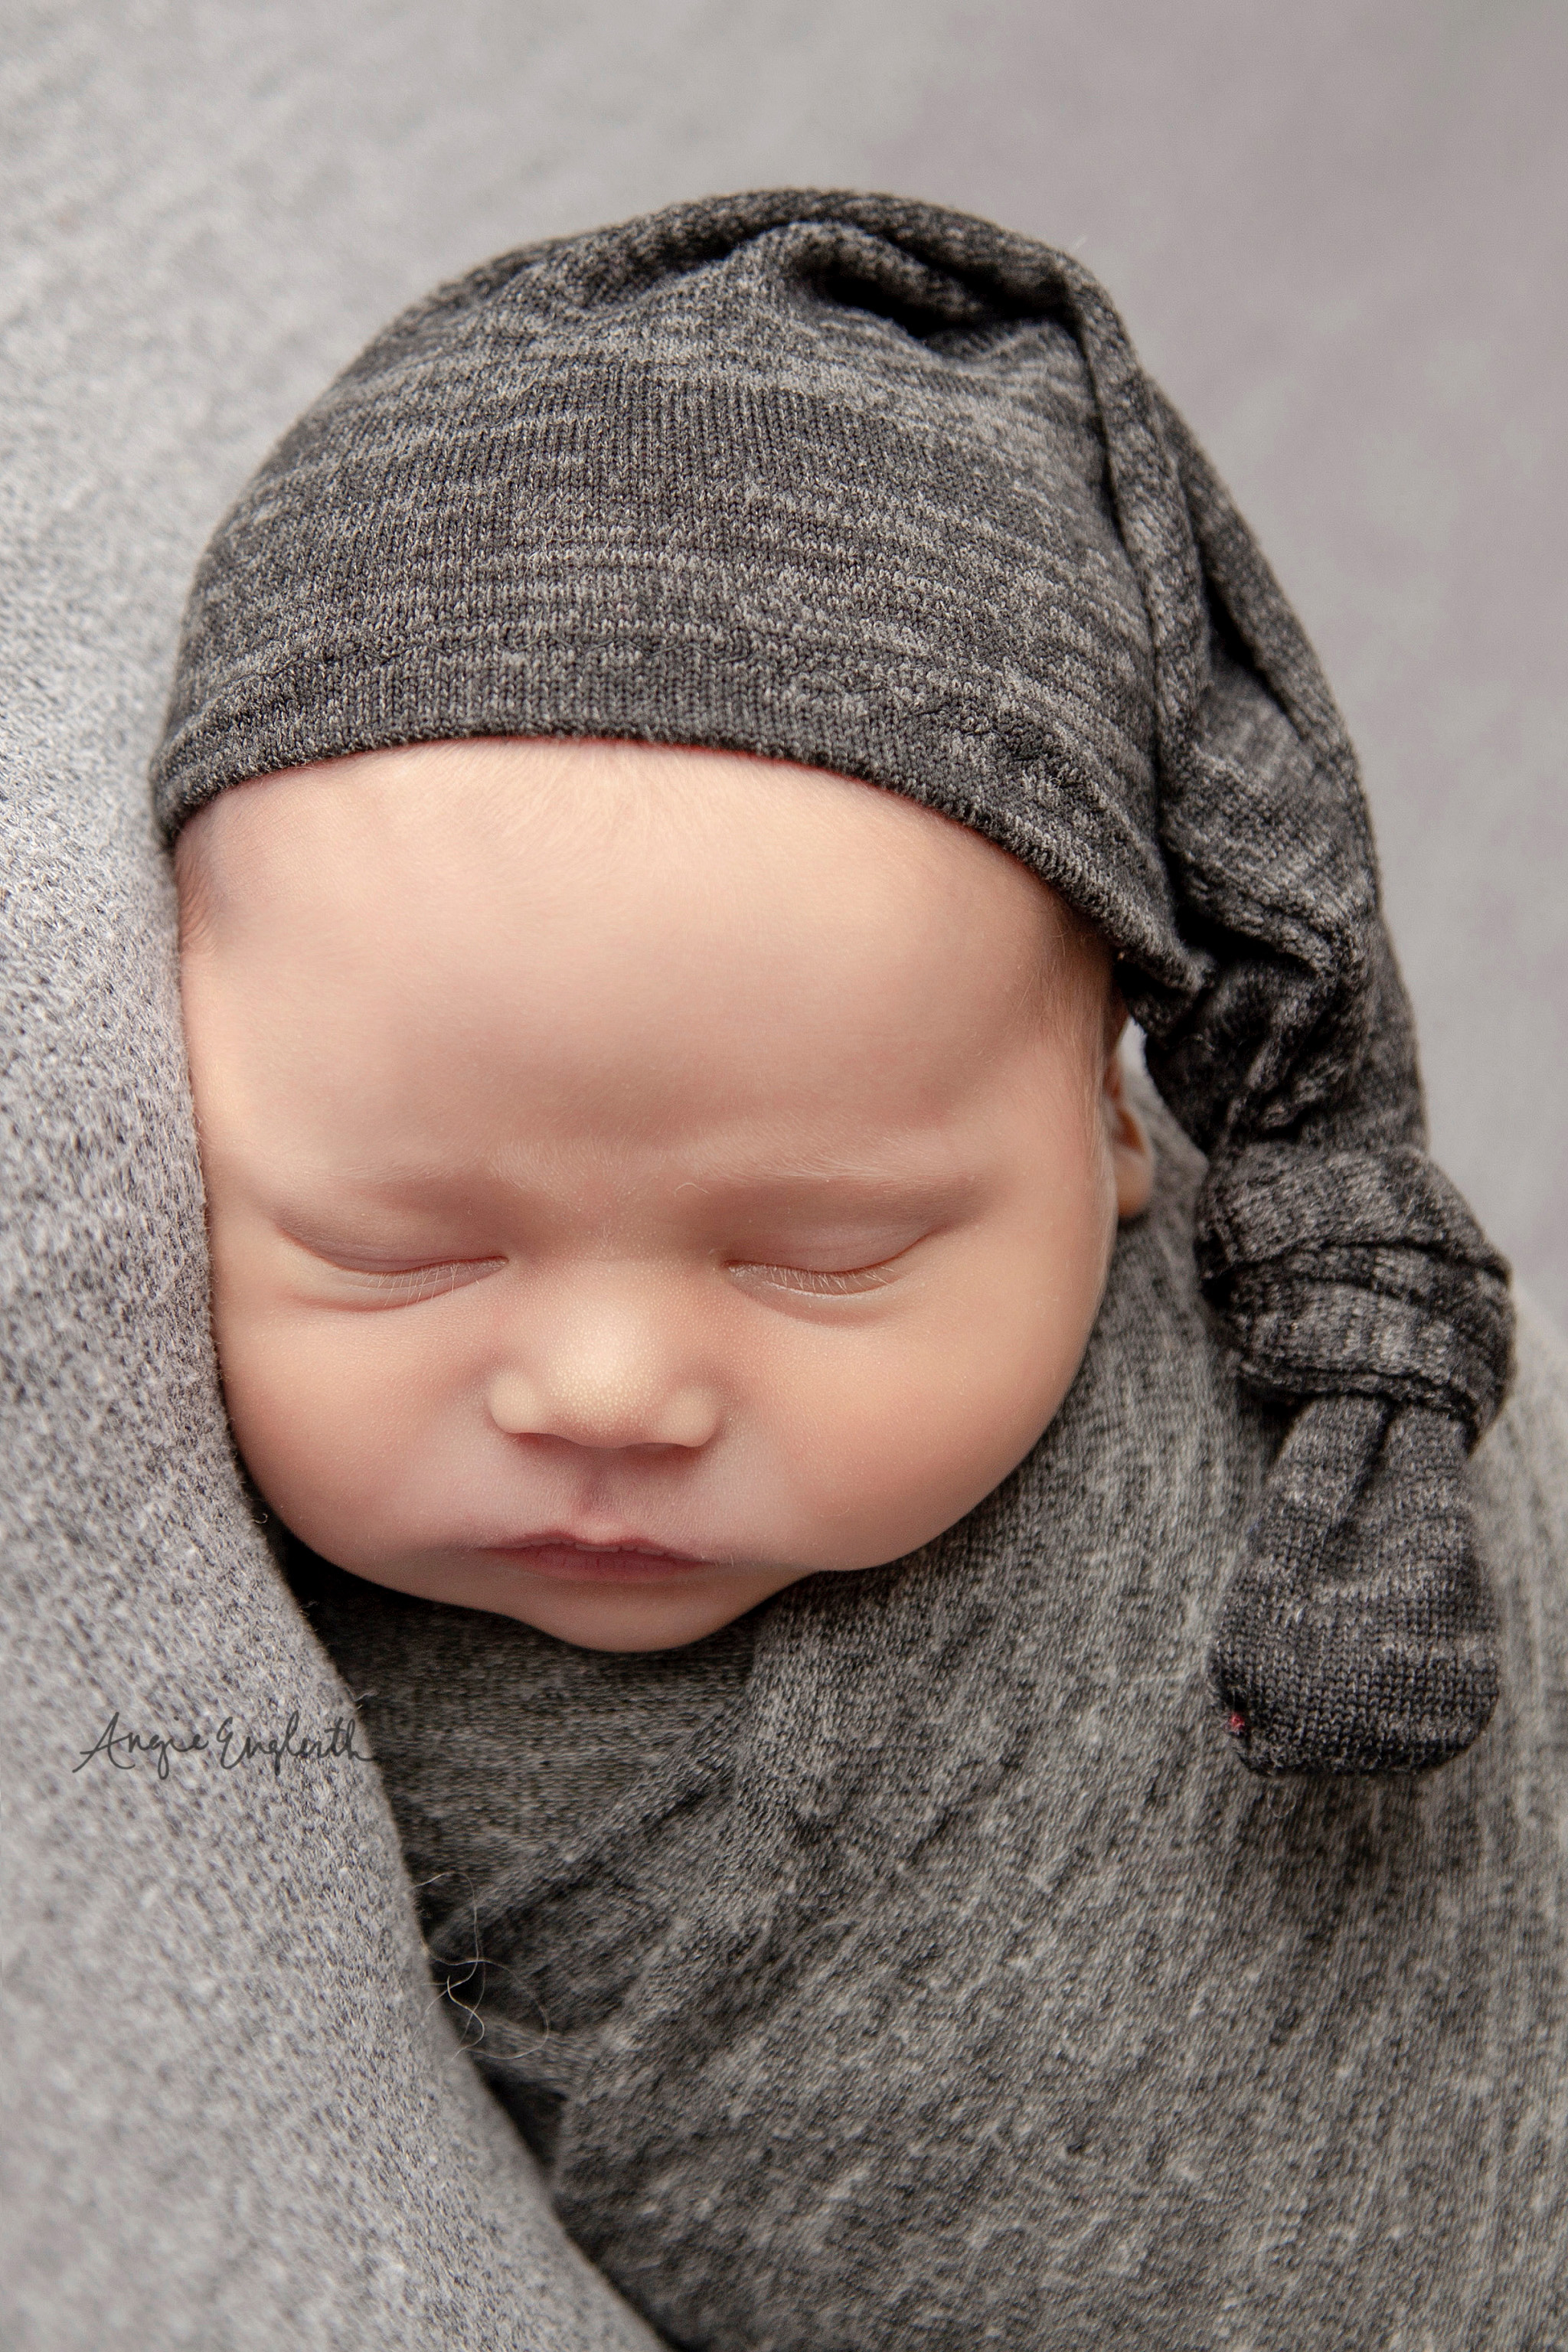 lancaster_newborn_photographer_angie_englerth_central_pa_023.jpg